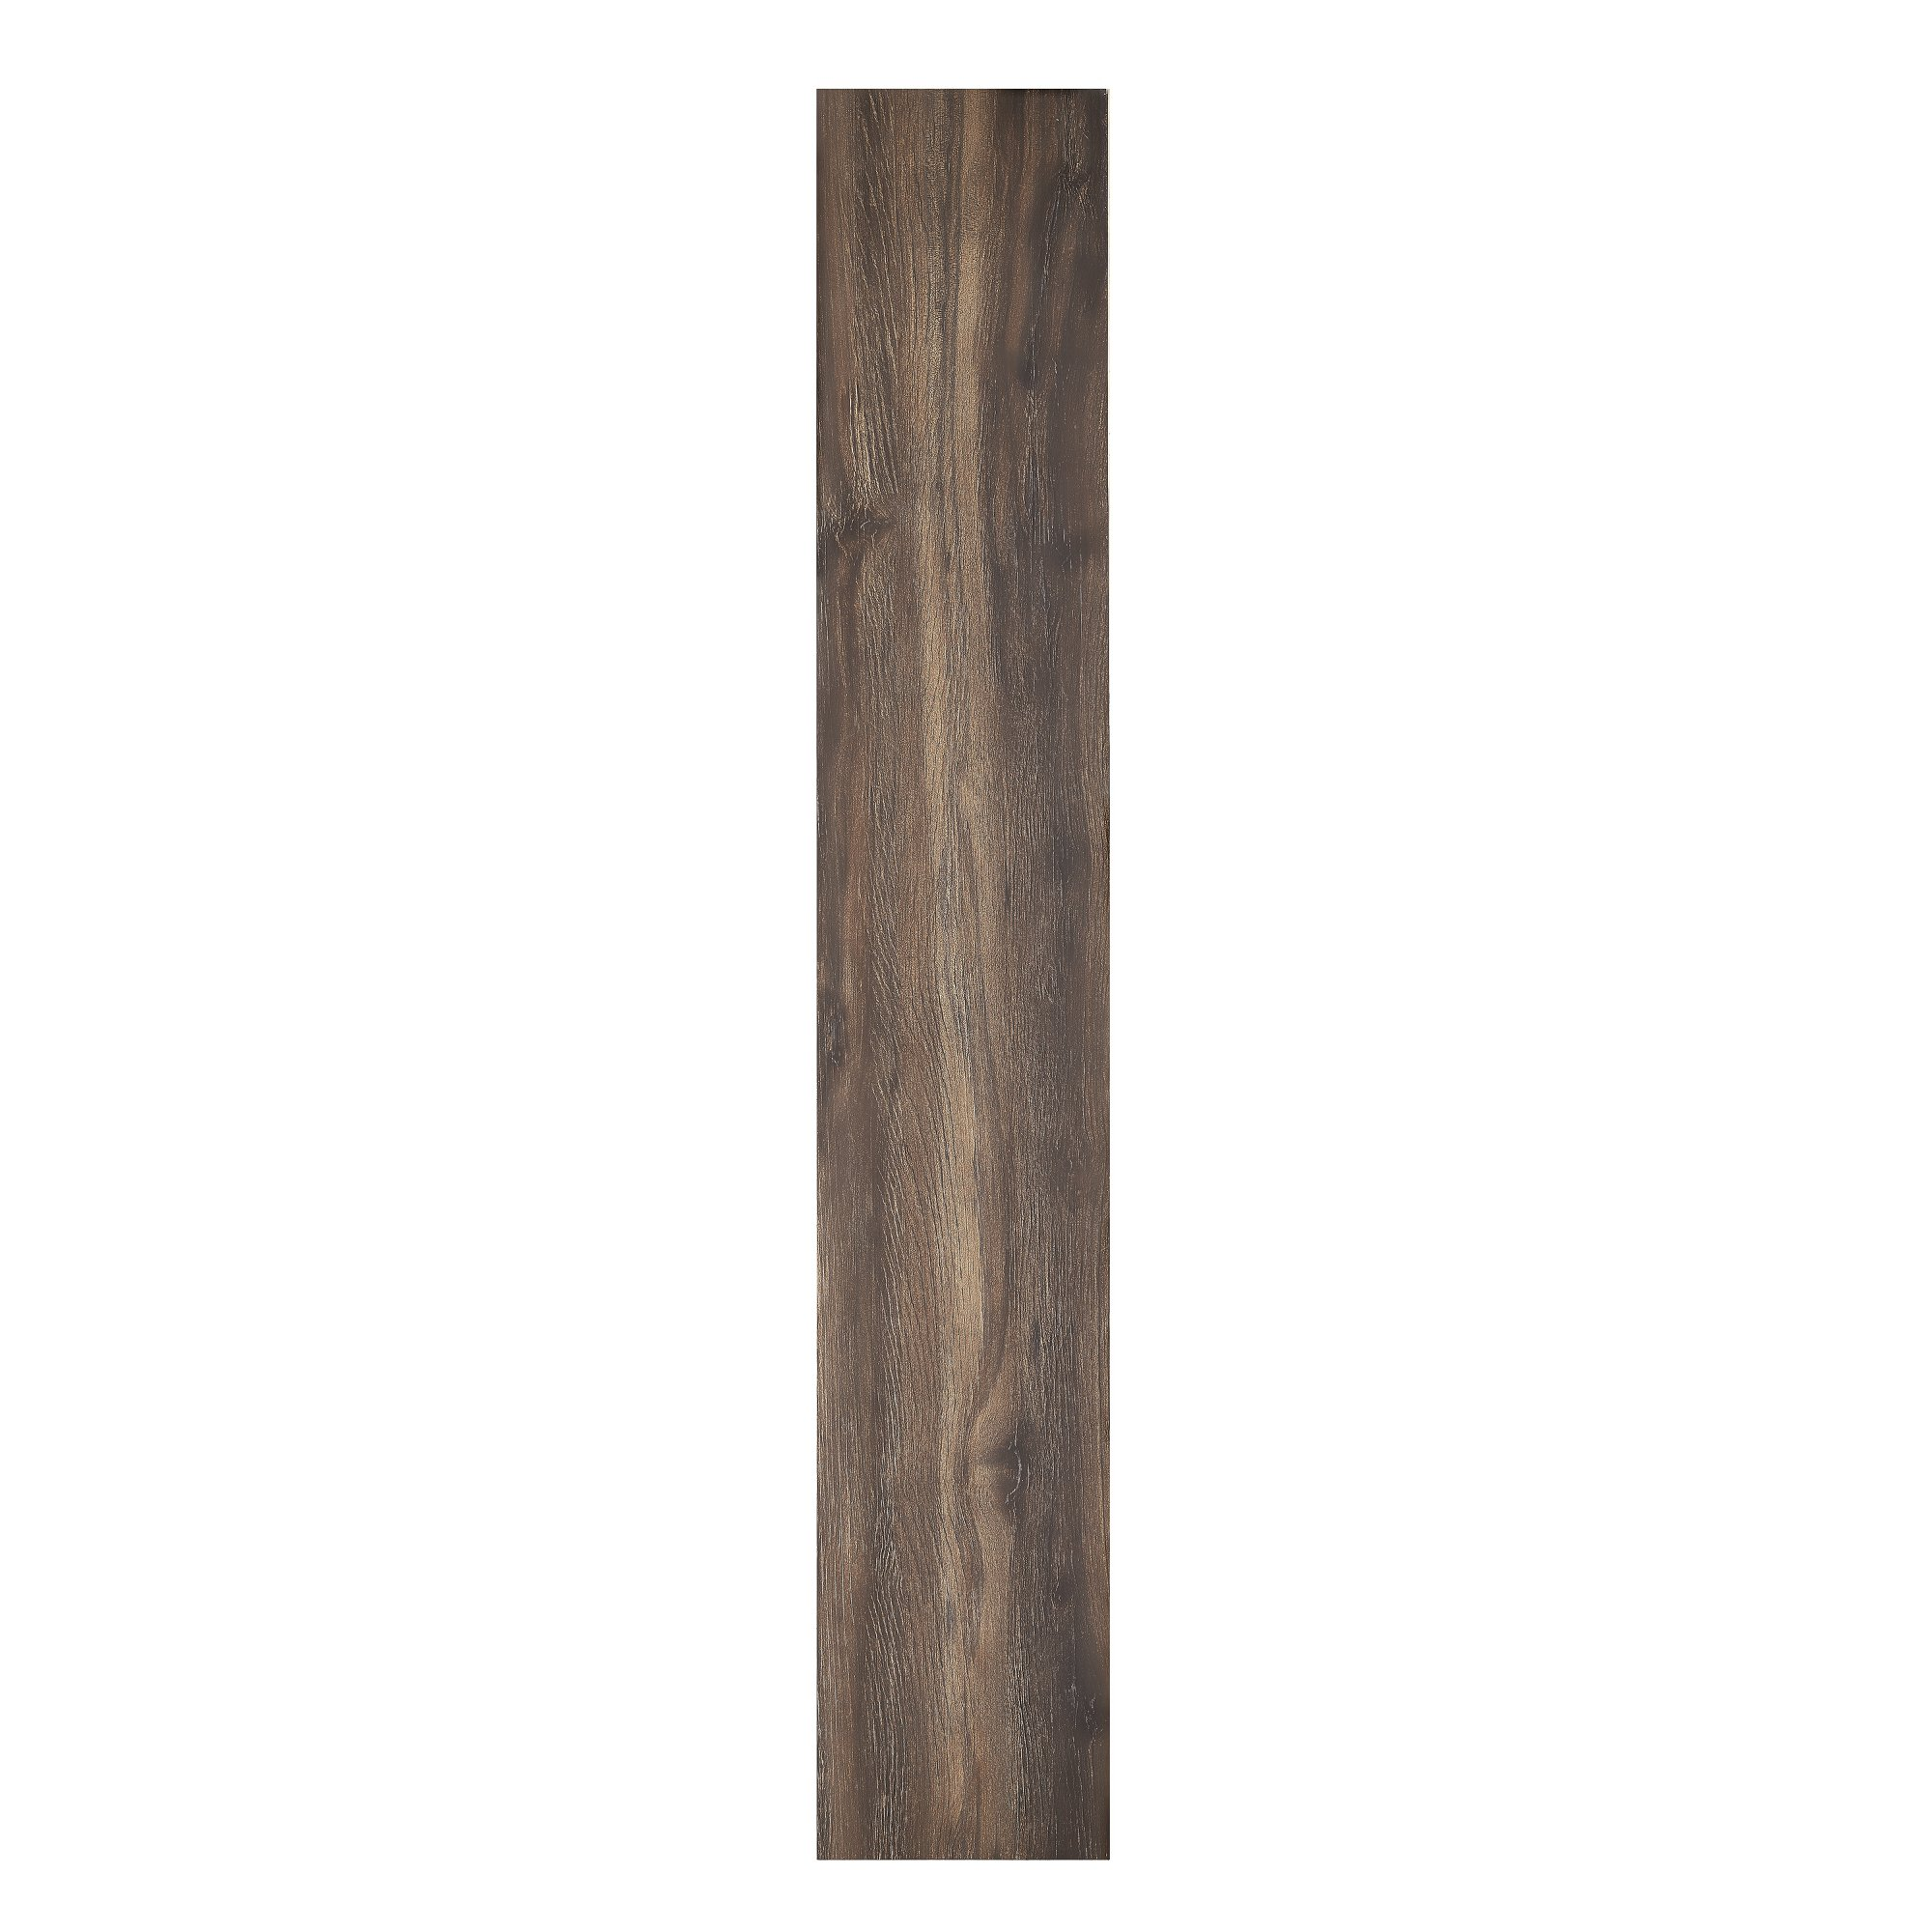 Achim Home Furnishings STP2.0DW10 2mm Sterling 10 Vinyl Planks, 6'' x 36'', Driftwood